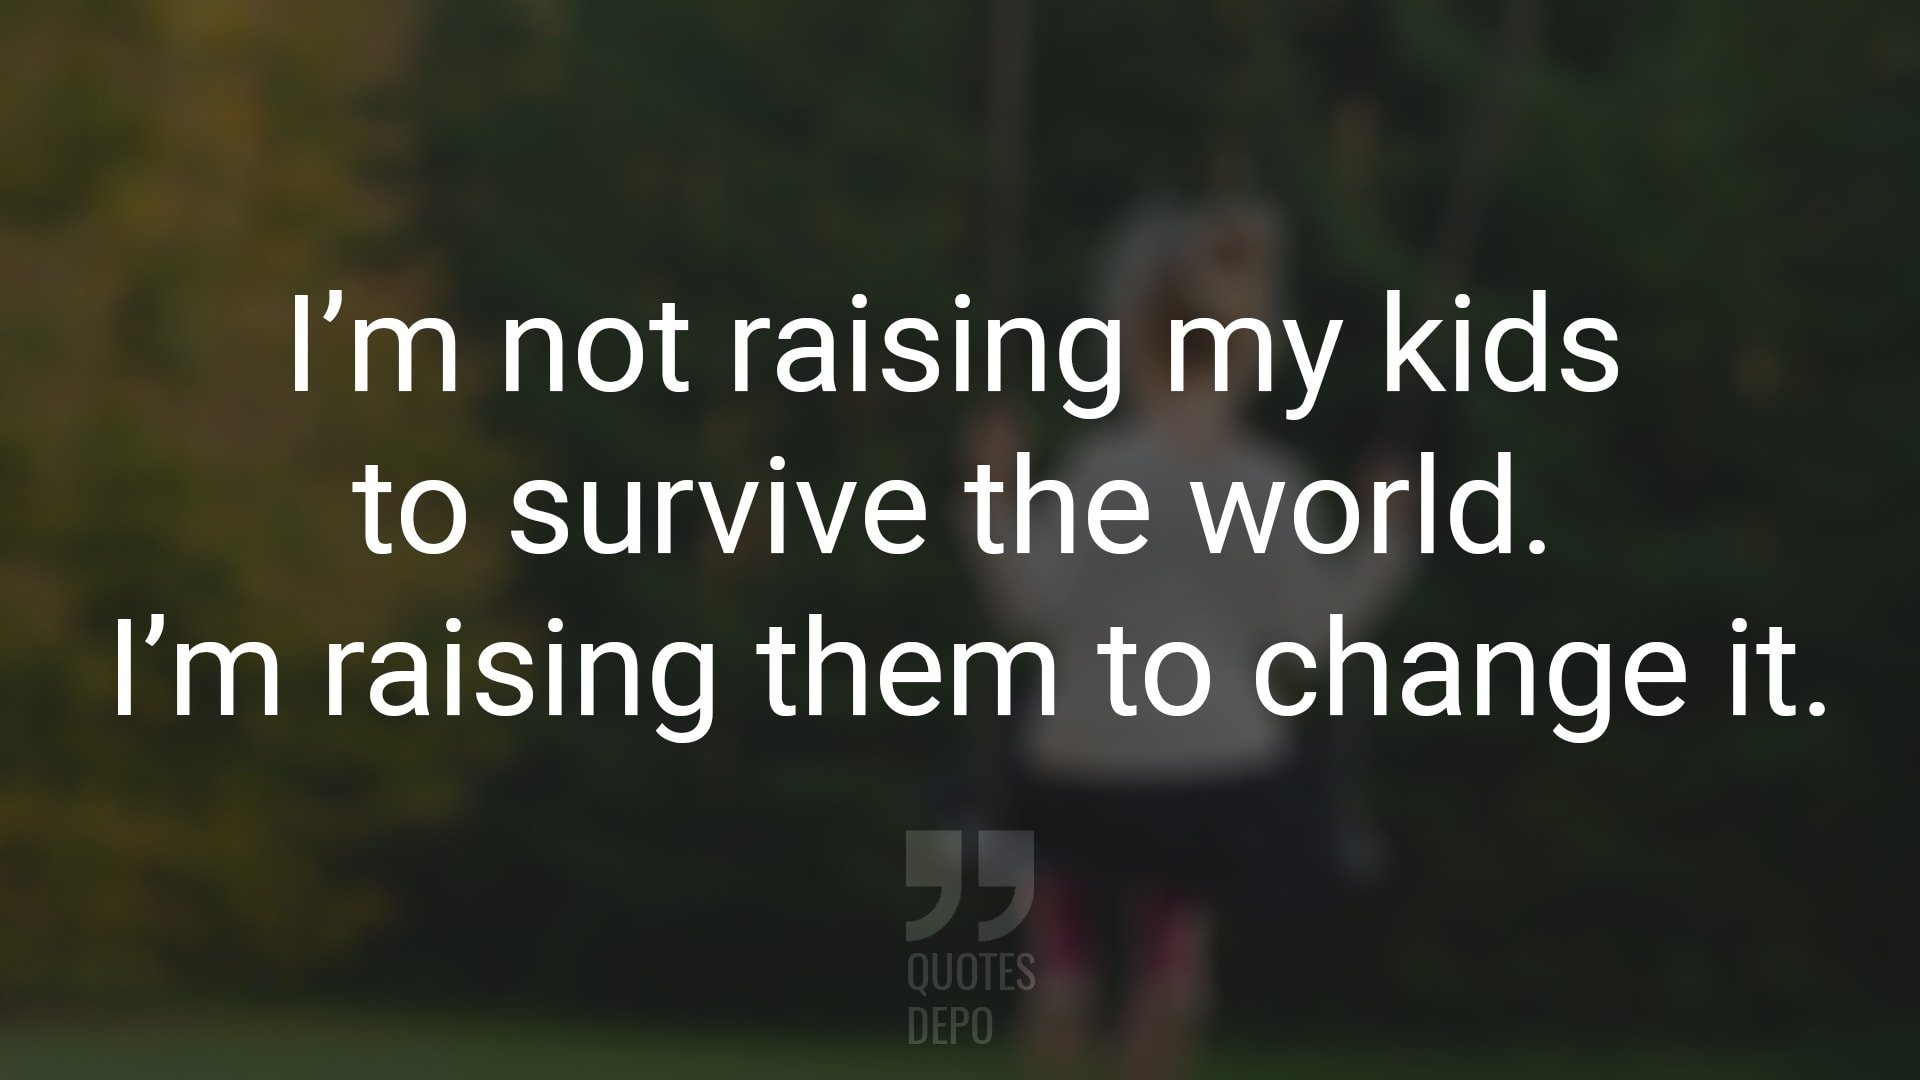 I'm not Raising My Kids to Survive the World